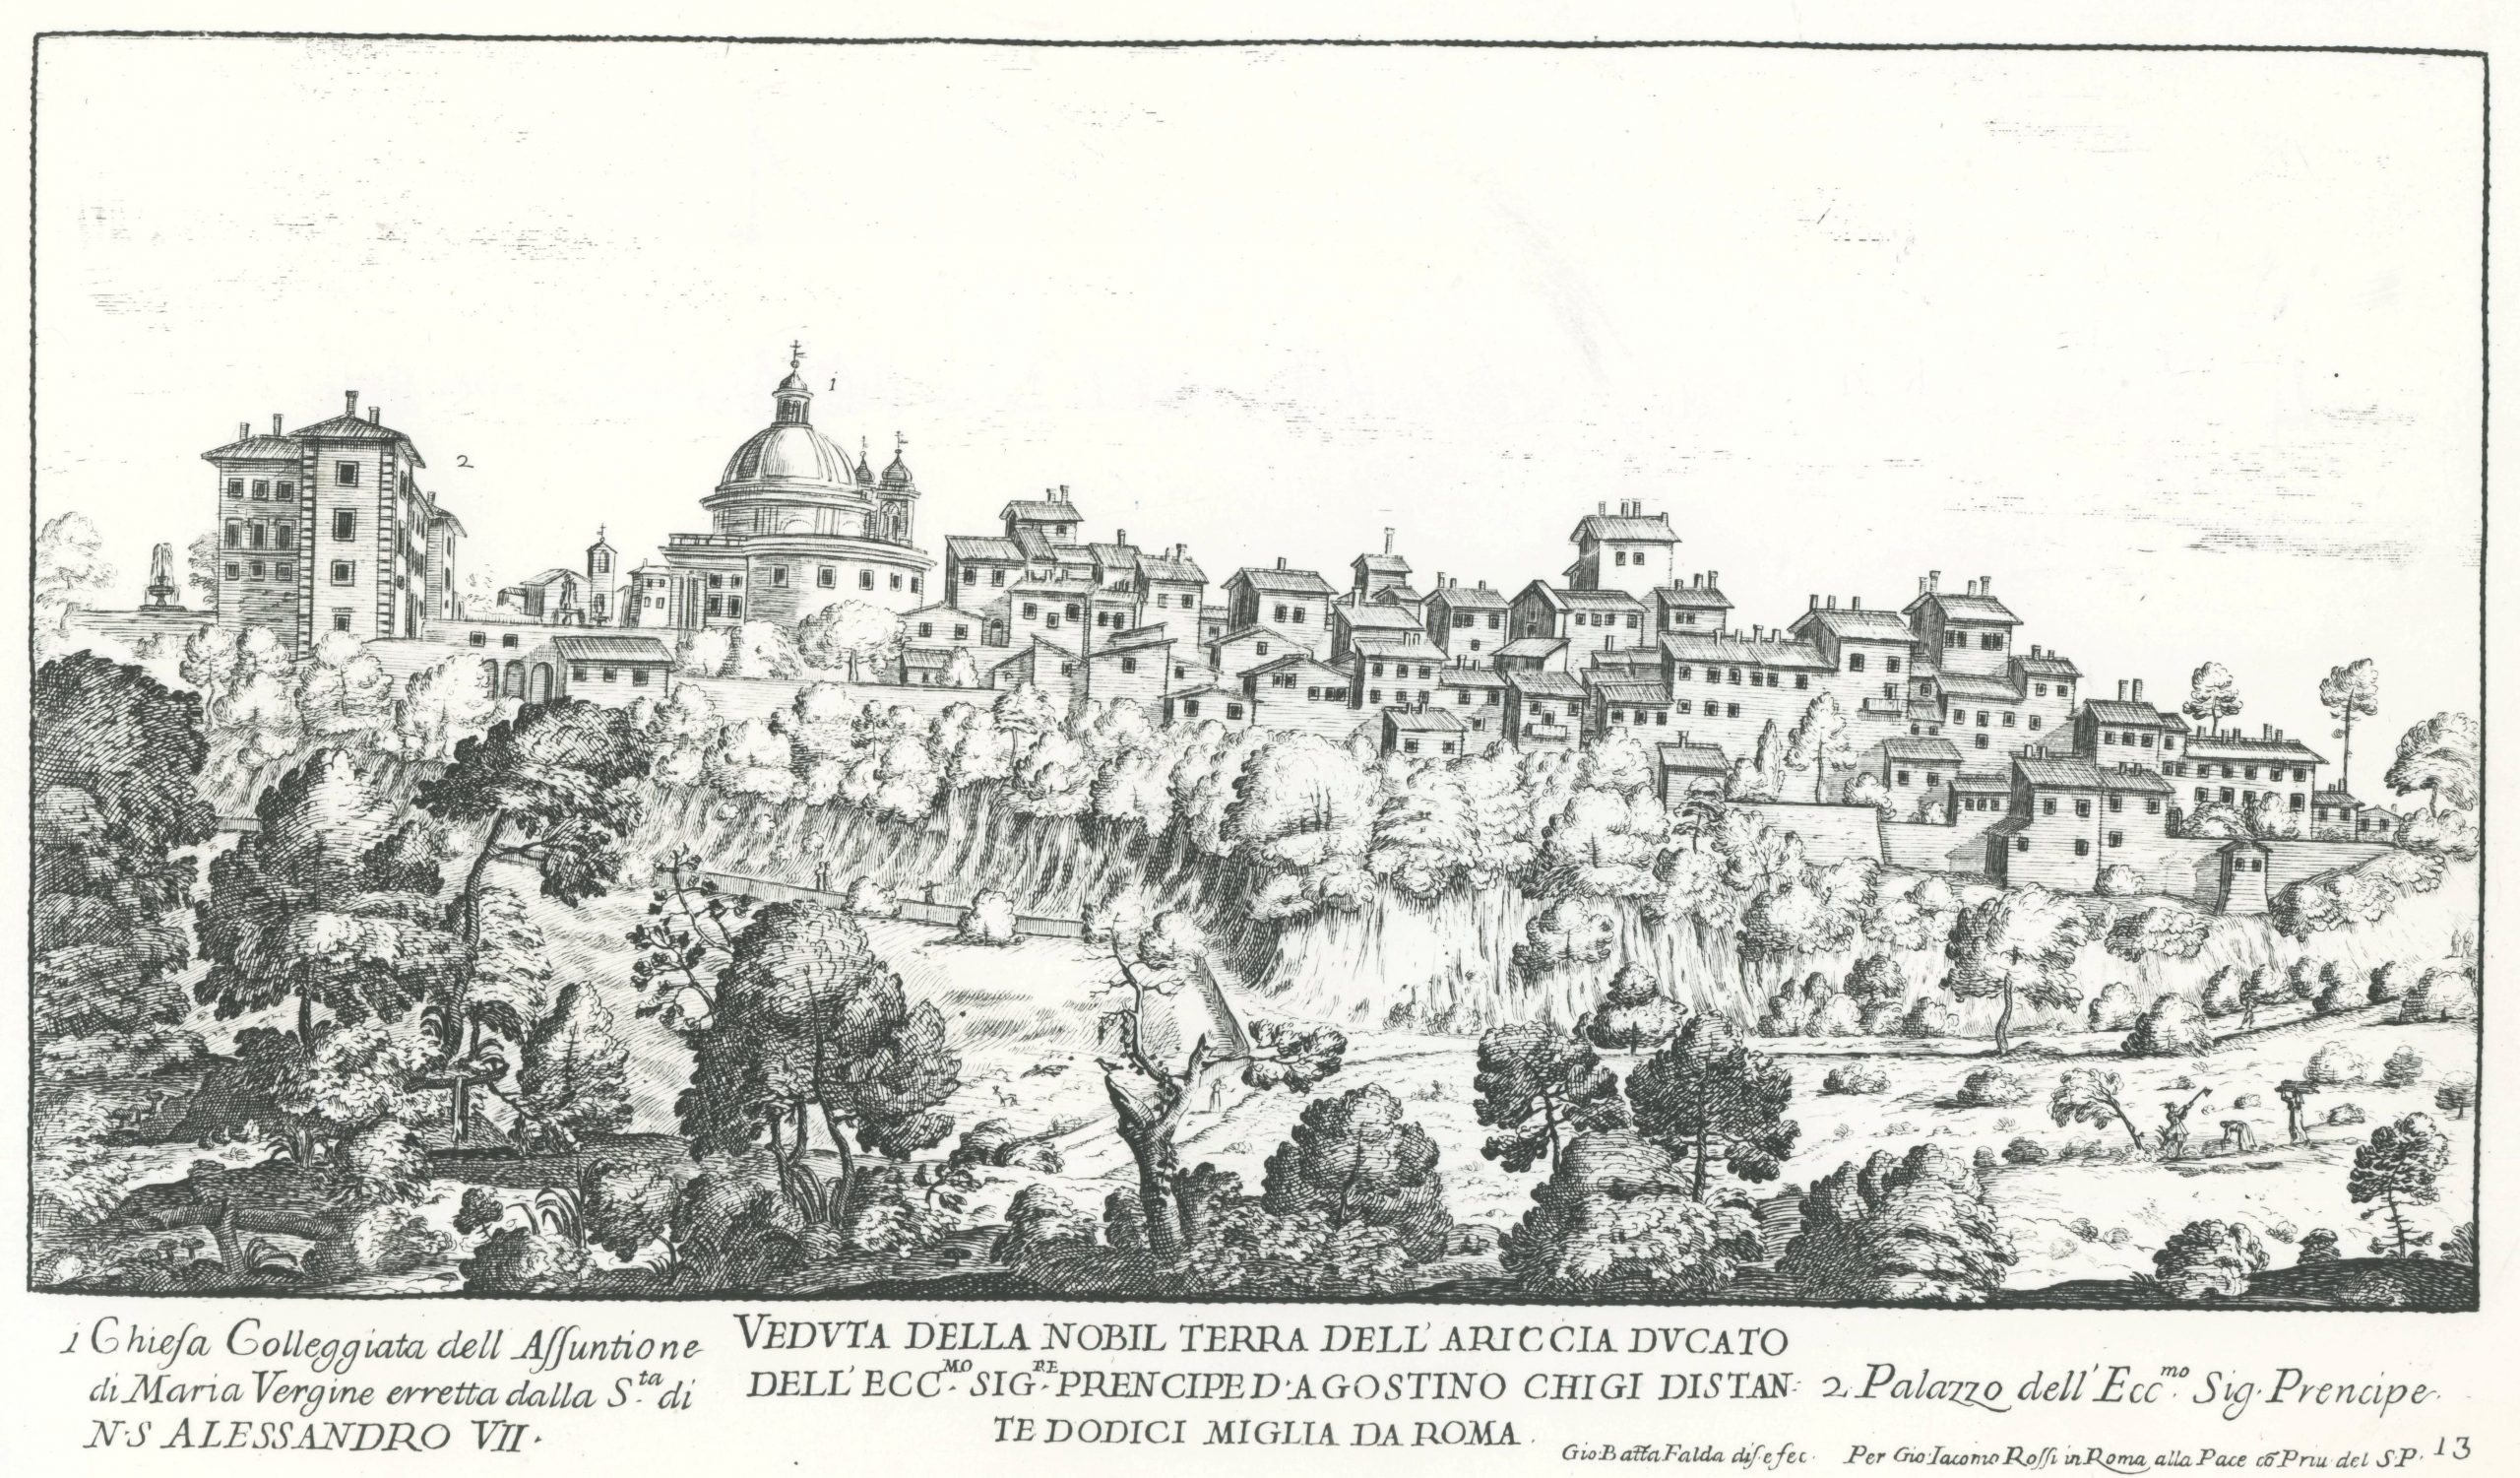 City scape featuring the palace and small houses